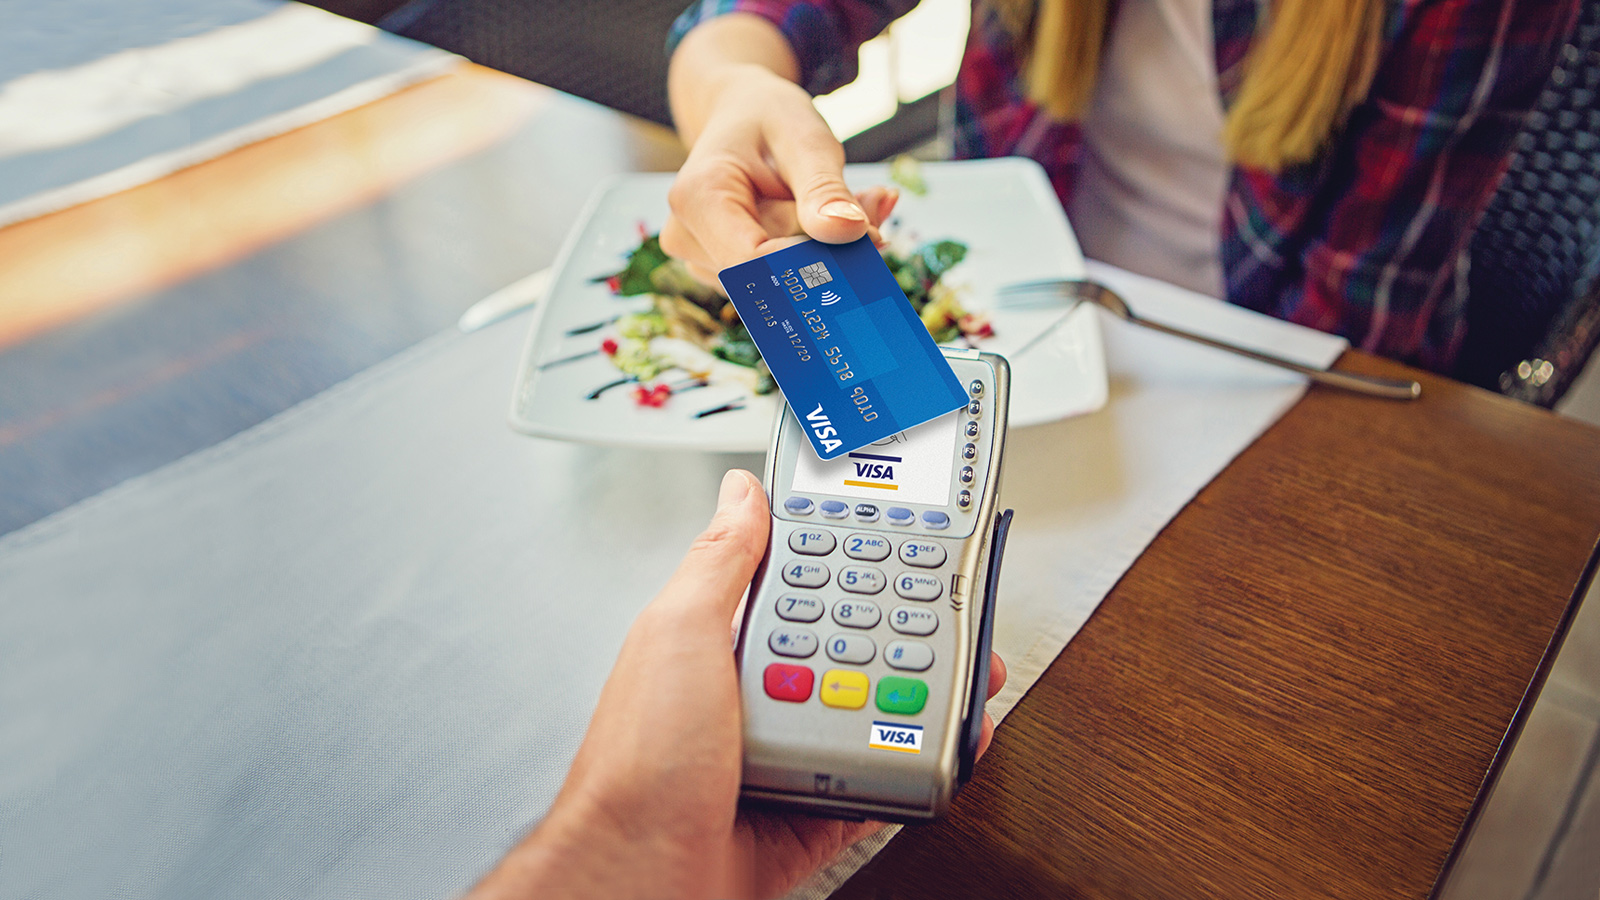 Paying with Visa card